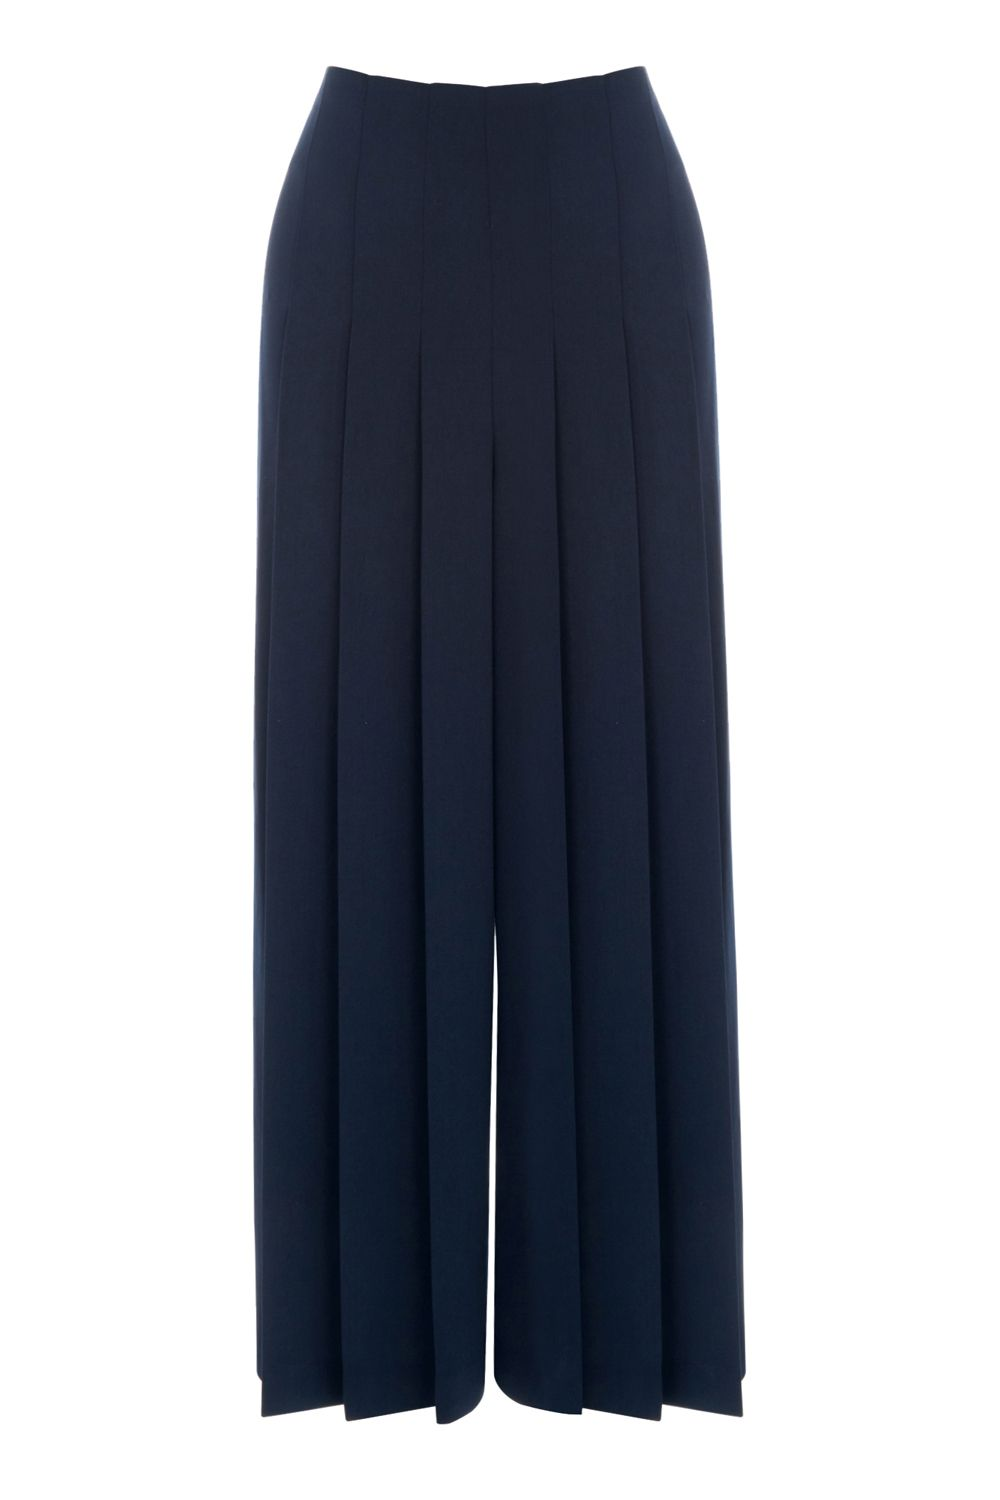 Warehouse PLEATED CULOTTES, Blue